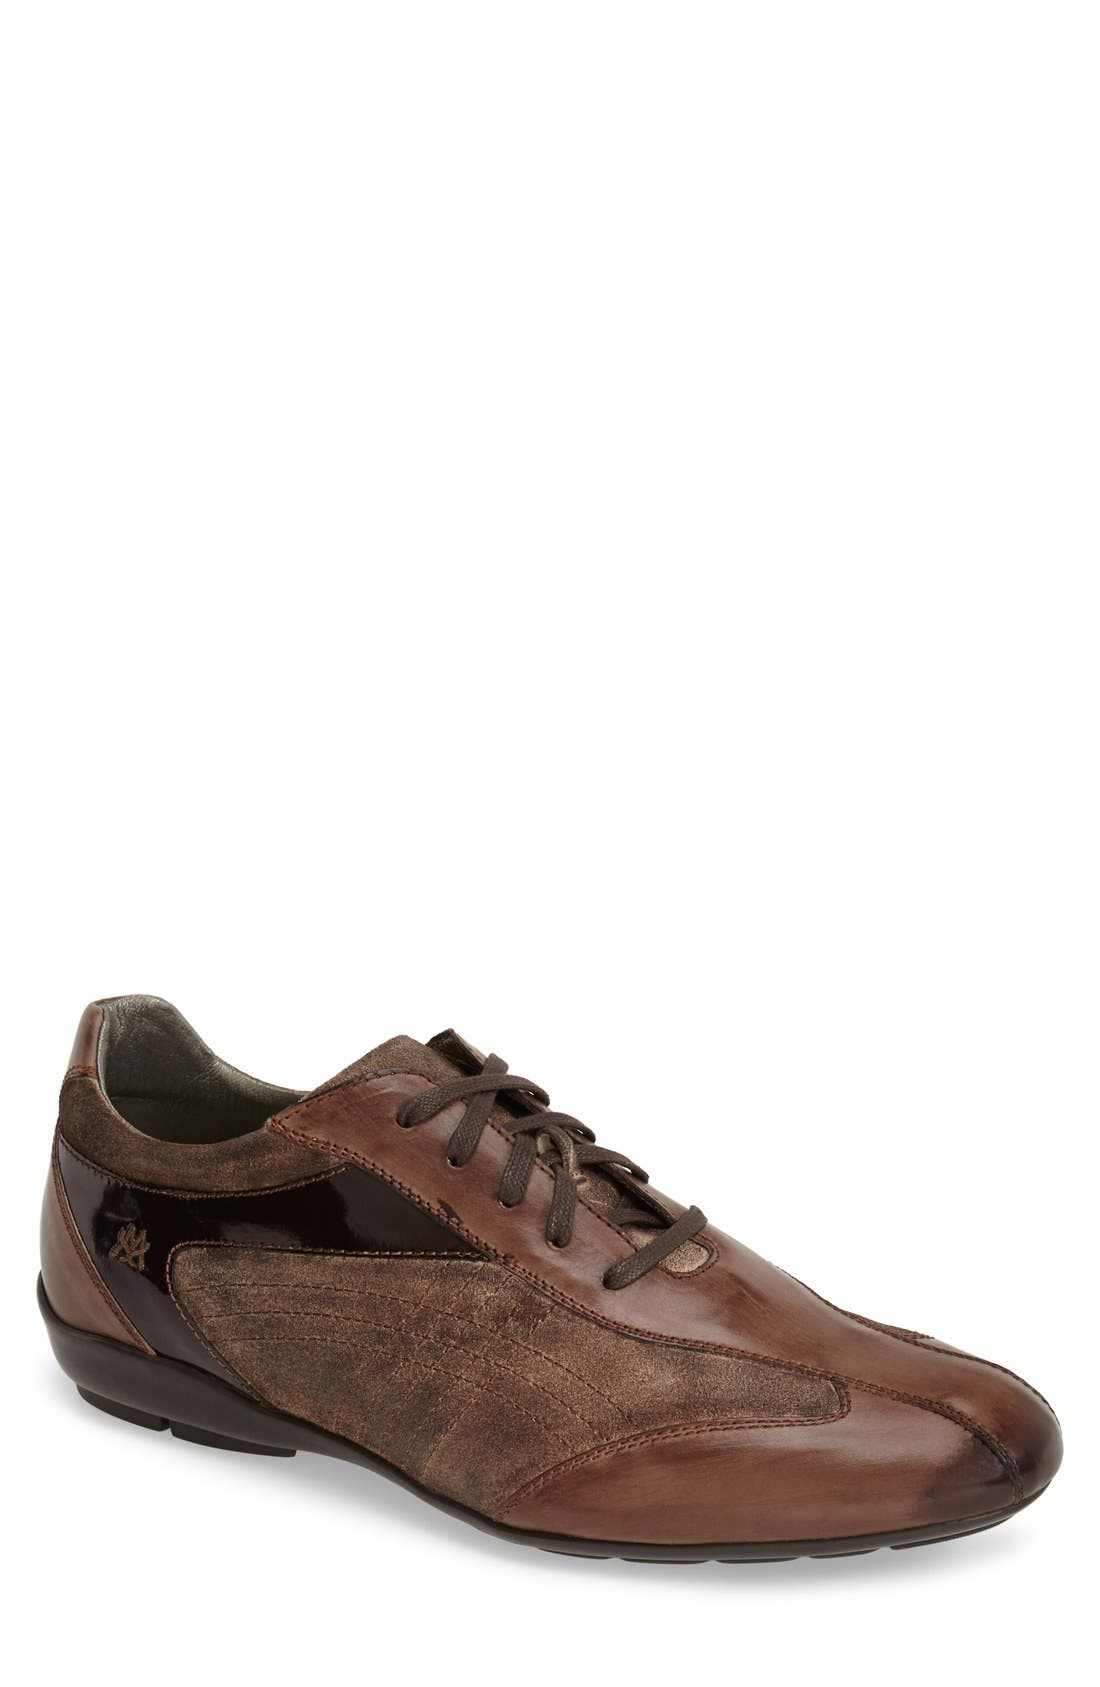 'Vega' Sneaker,                         Main,                         color, Mocha/ Taupe